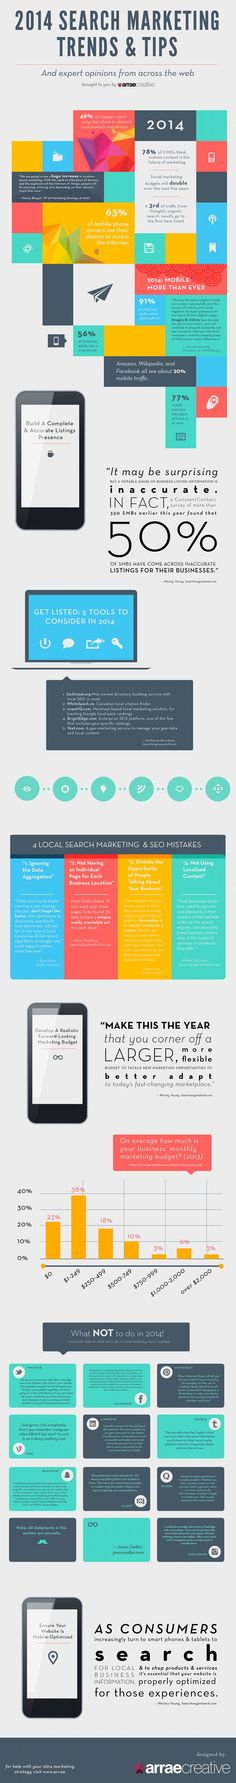 2014 Online Marketing Trends